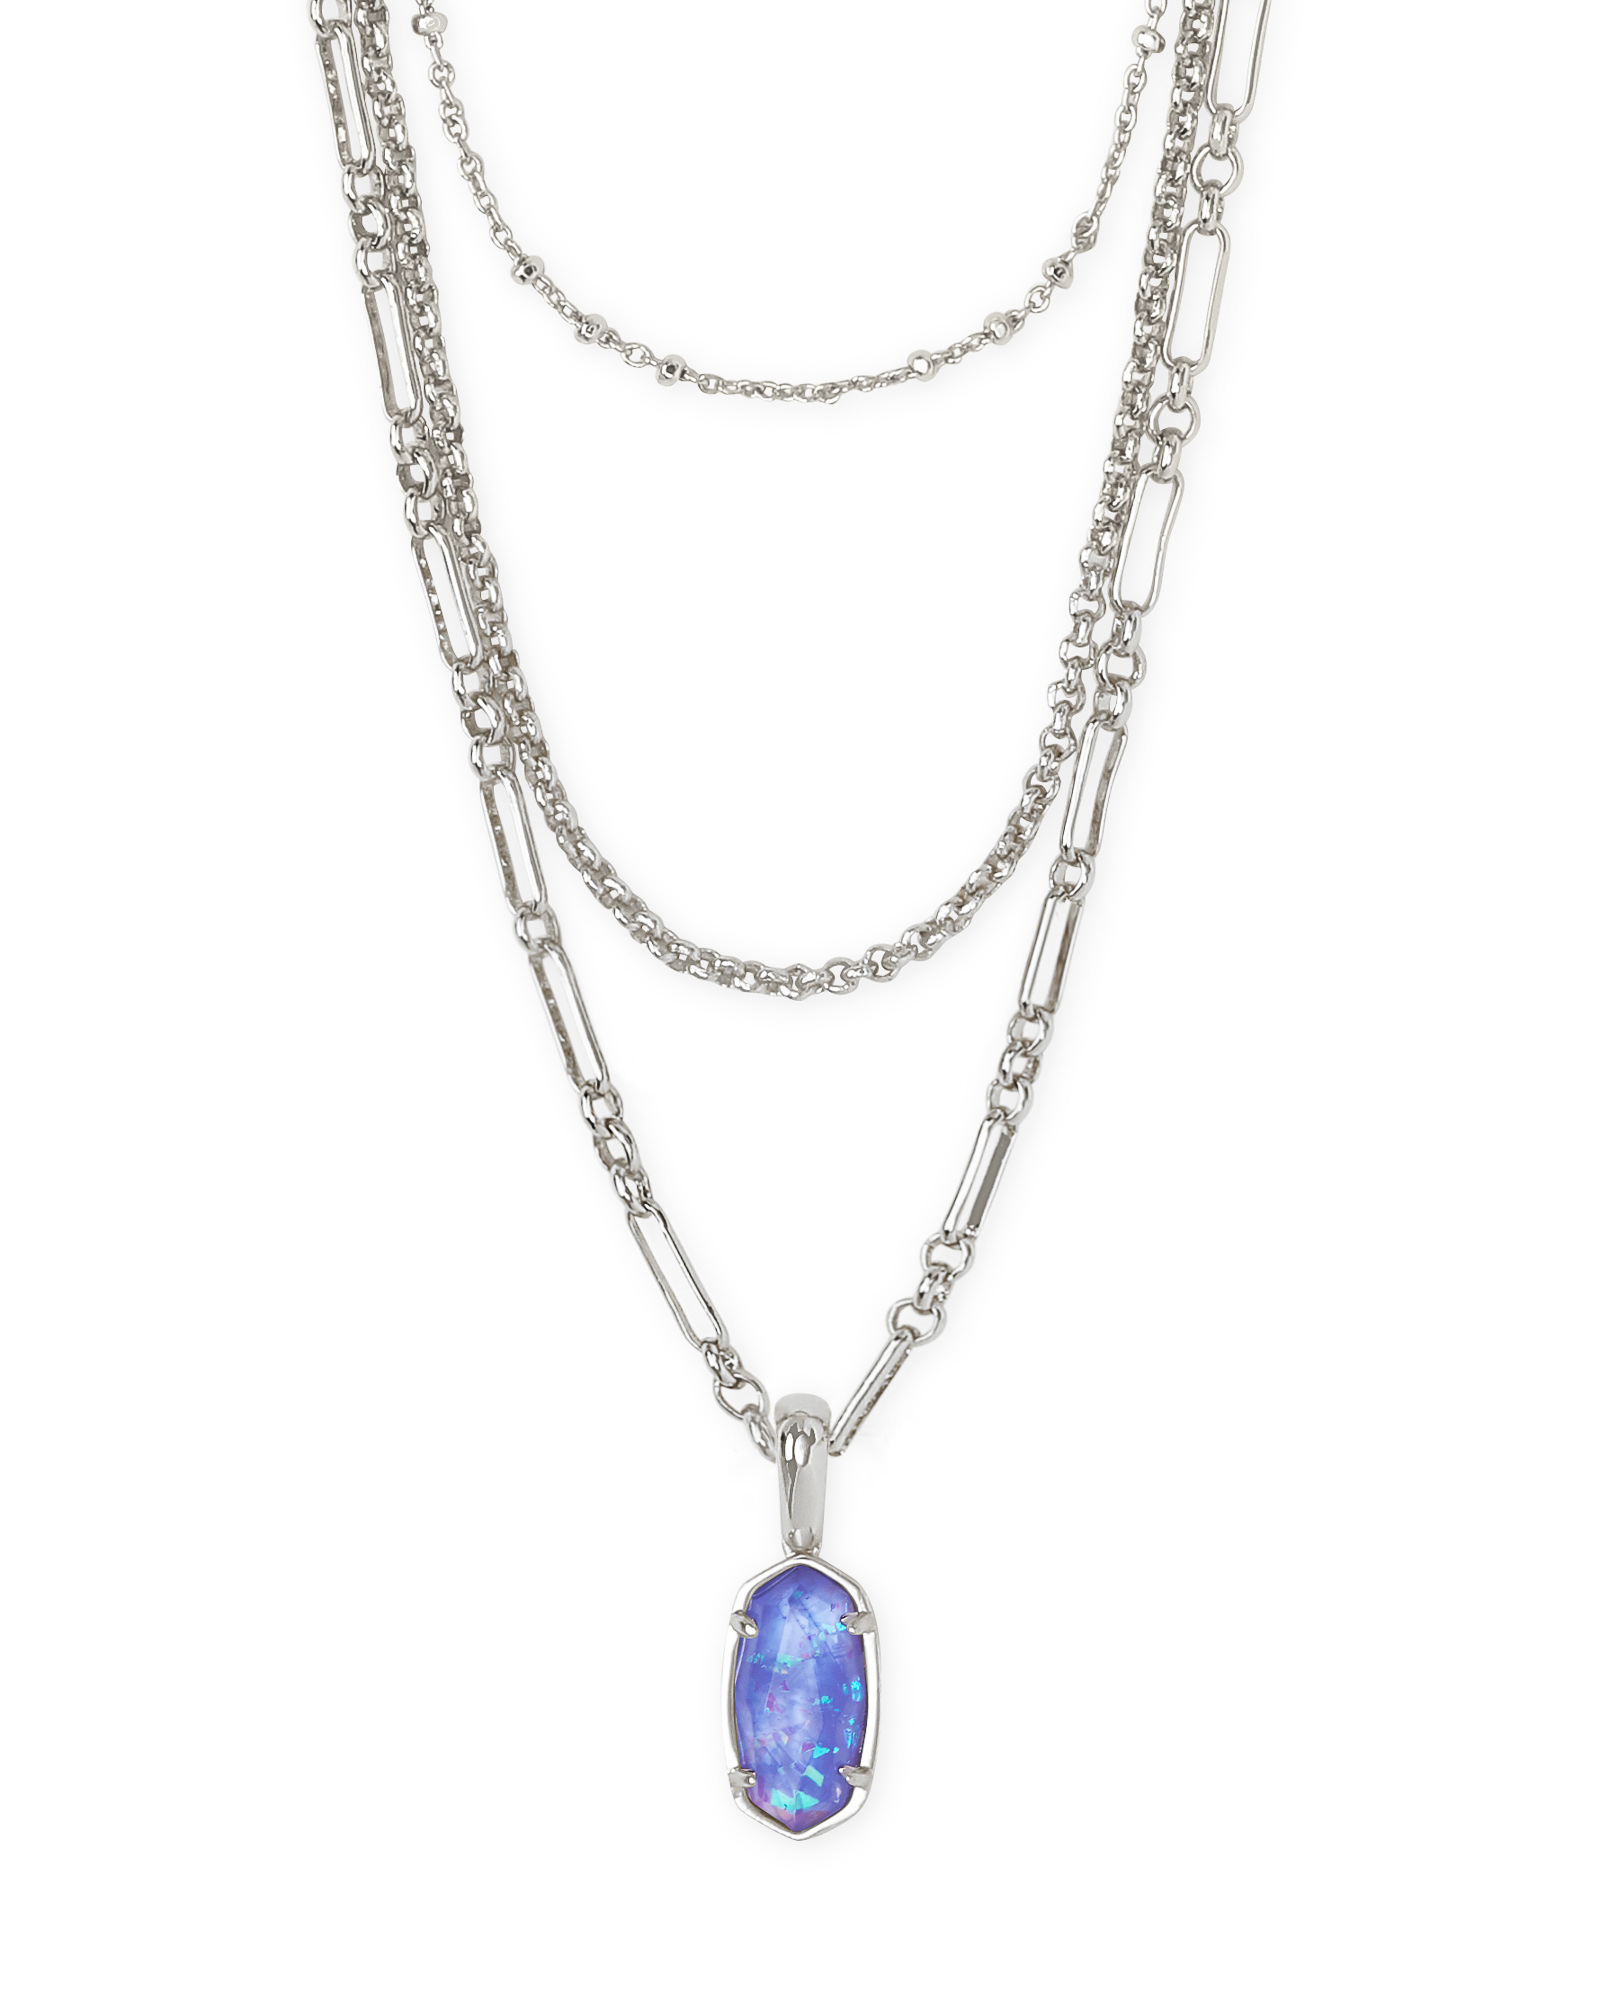 Elisa Silver Triple Strand Necklace in Iridescent Lilac Illusion